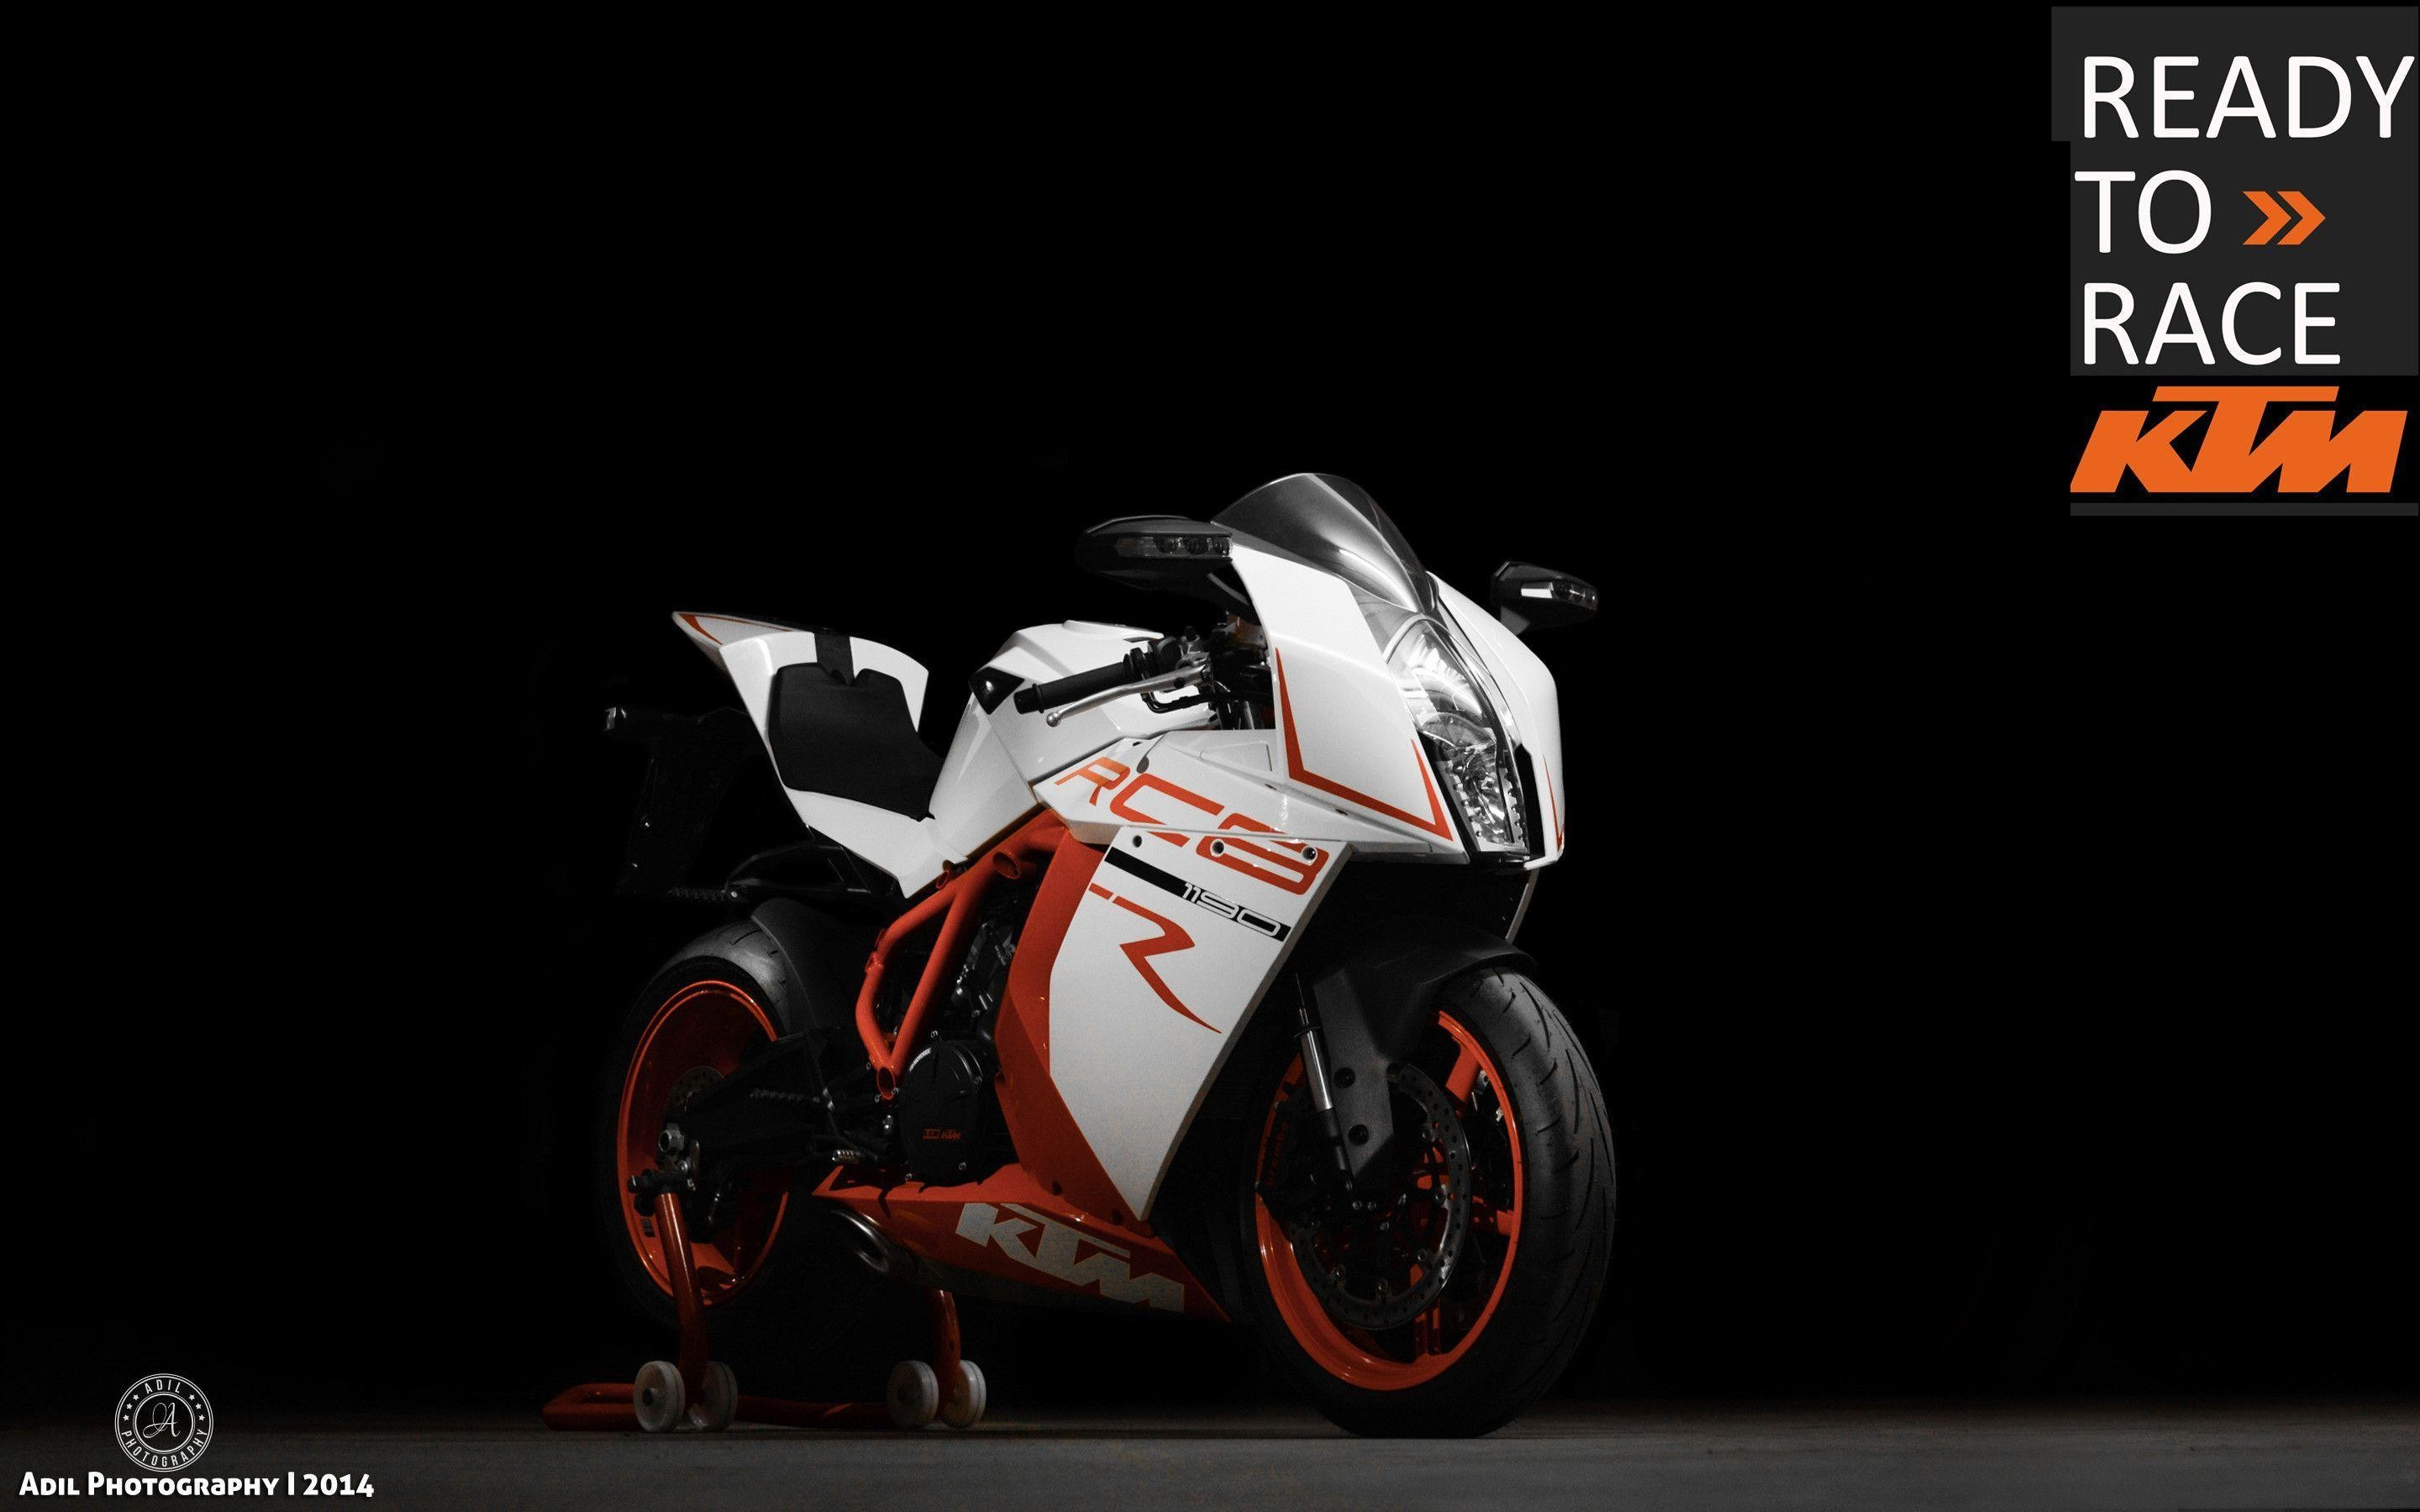 1080x1920 Preview Wallpaper Ktm 990 Super Duke R 2013 Naked Bike